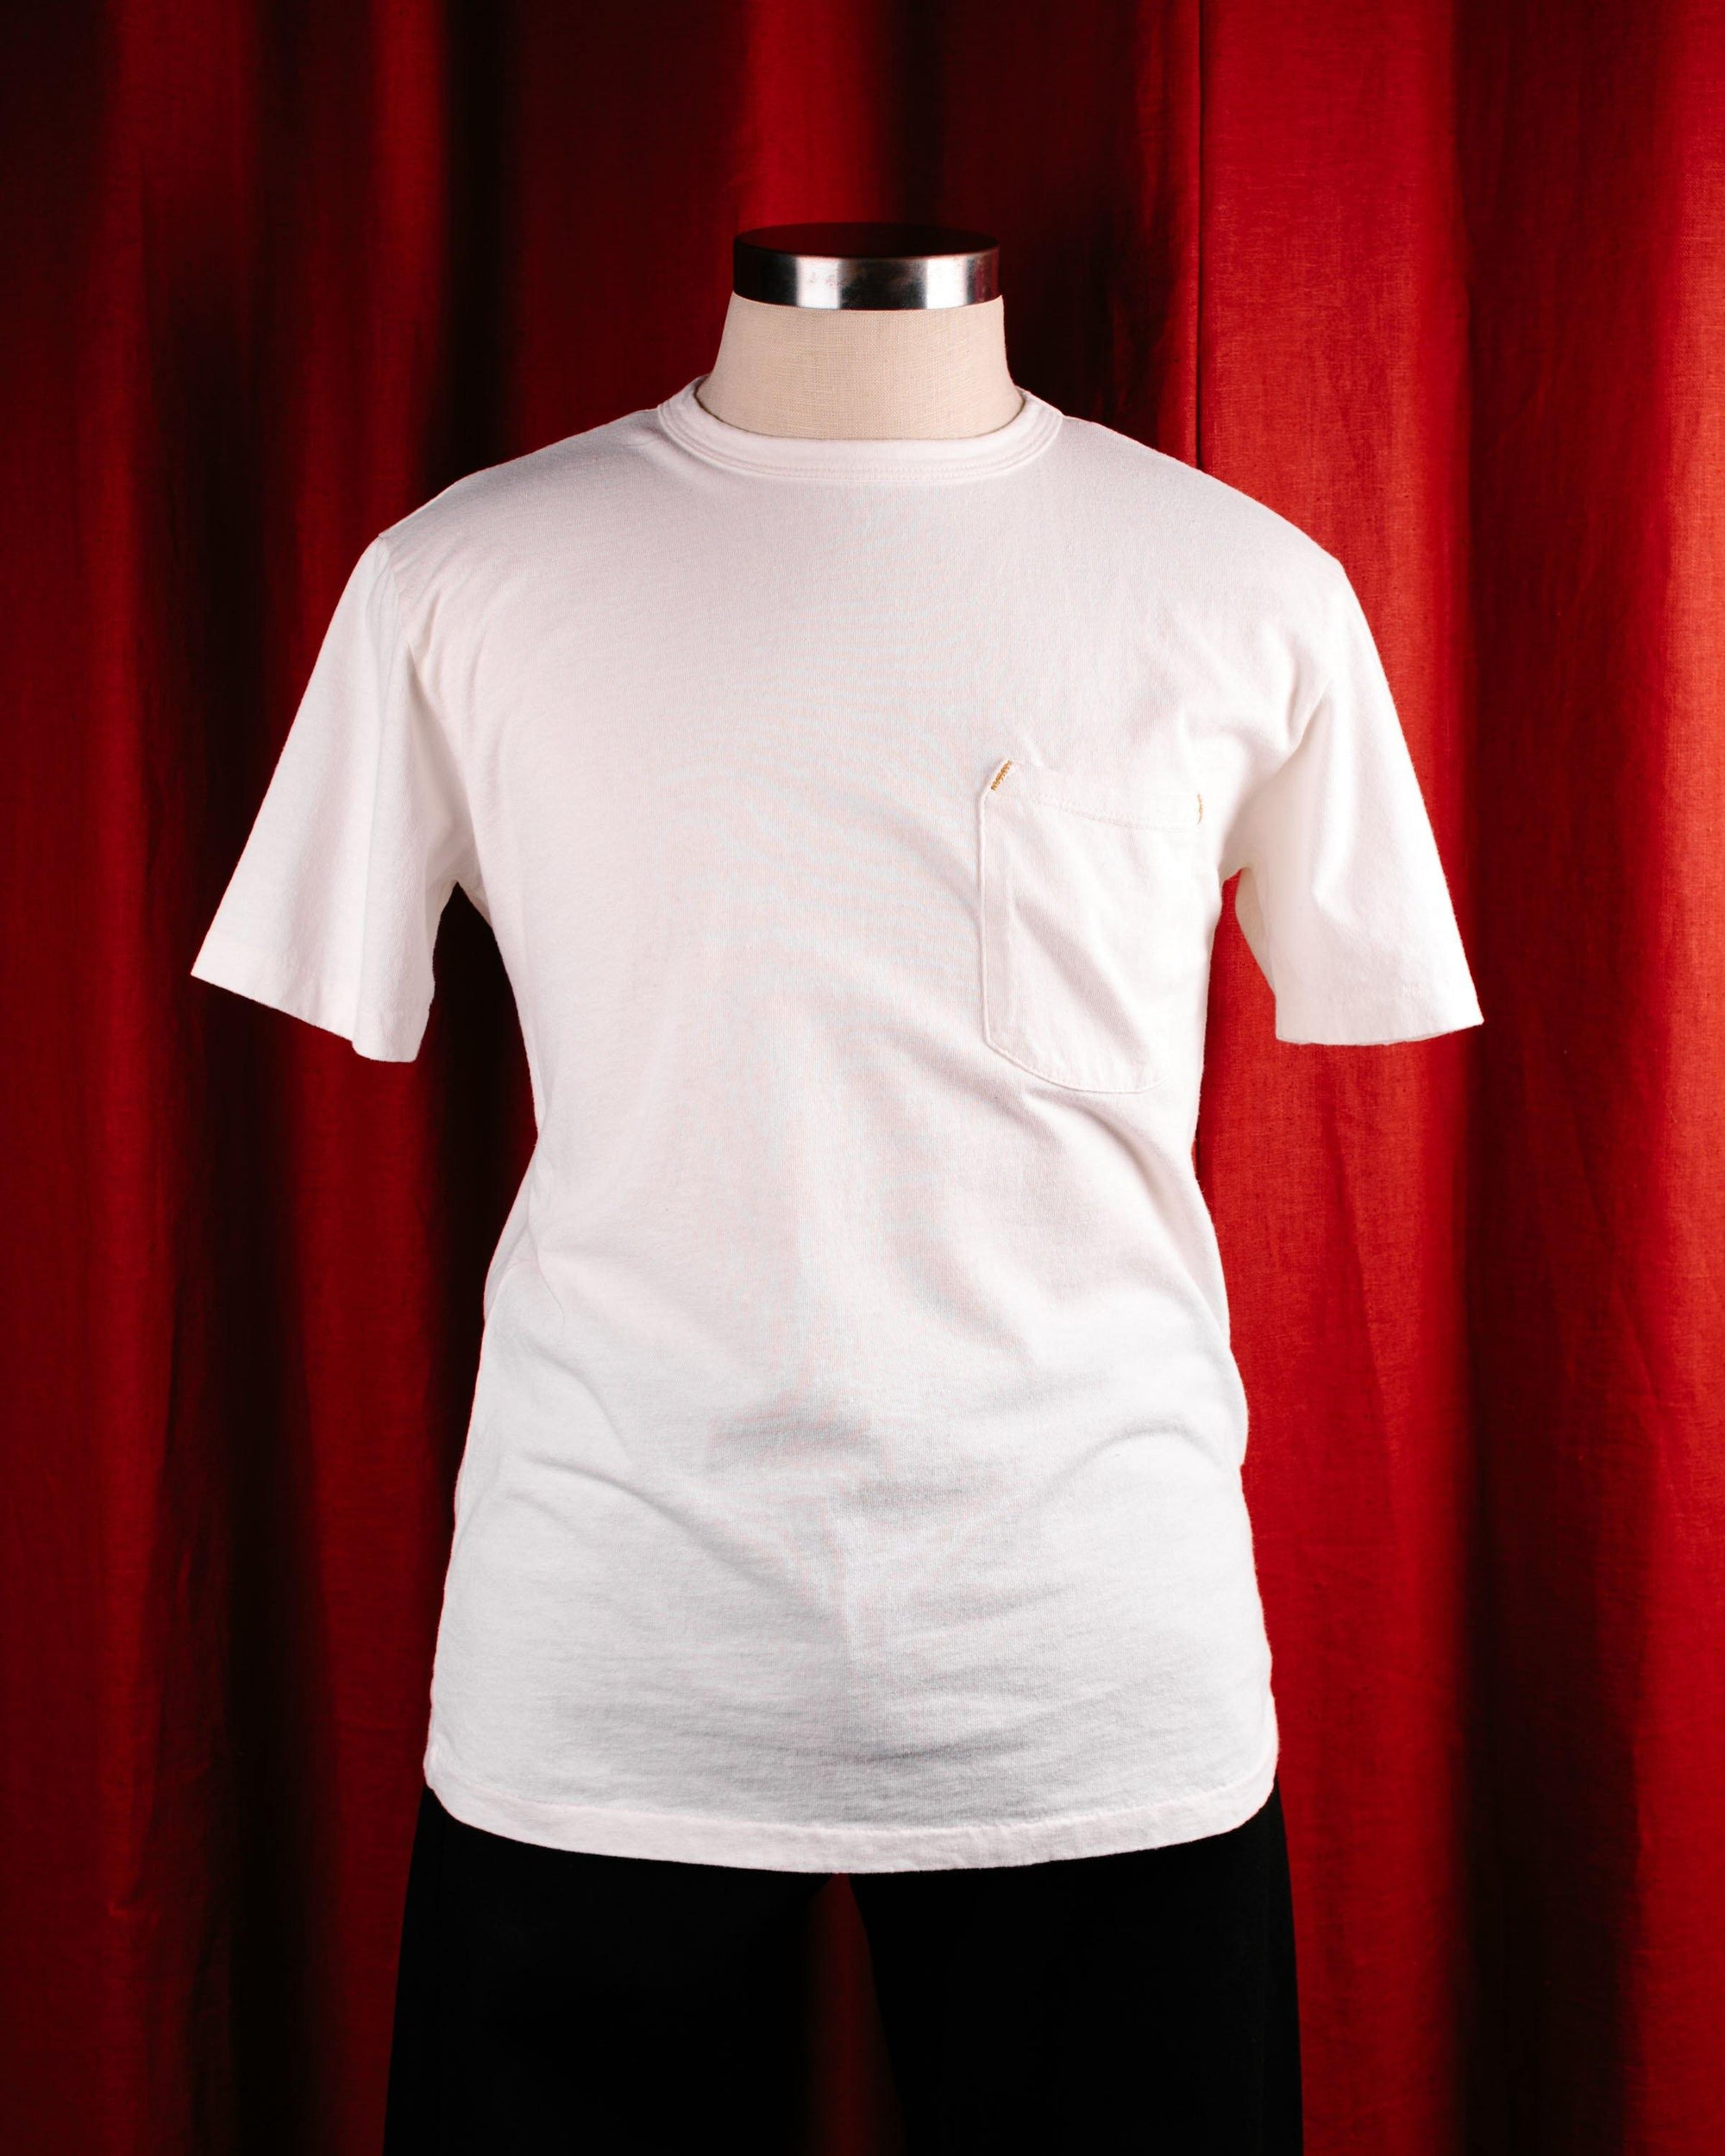 The Freenote Cloth 9oz short sleeves t-shirt in whtie is shown with a breast pocket and rounded collar.